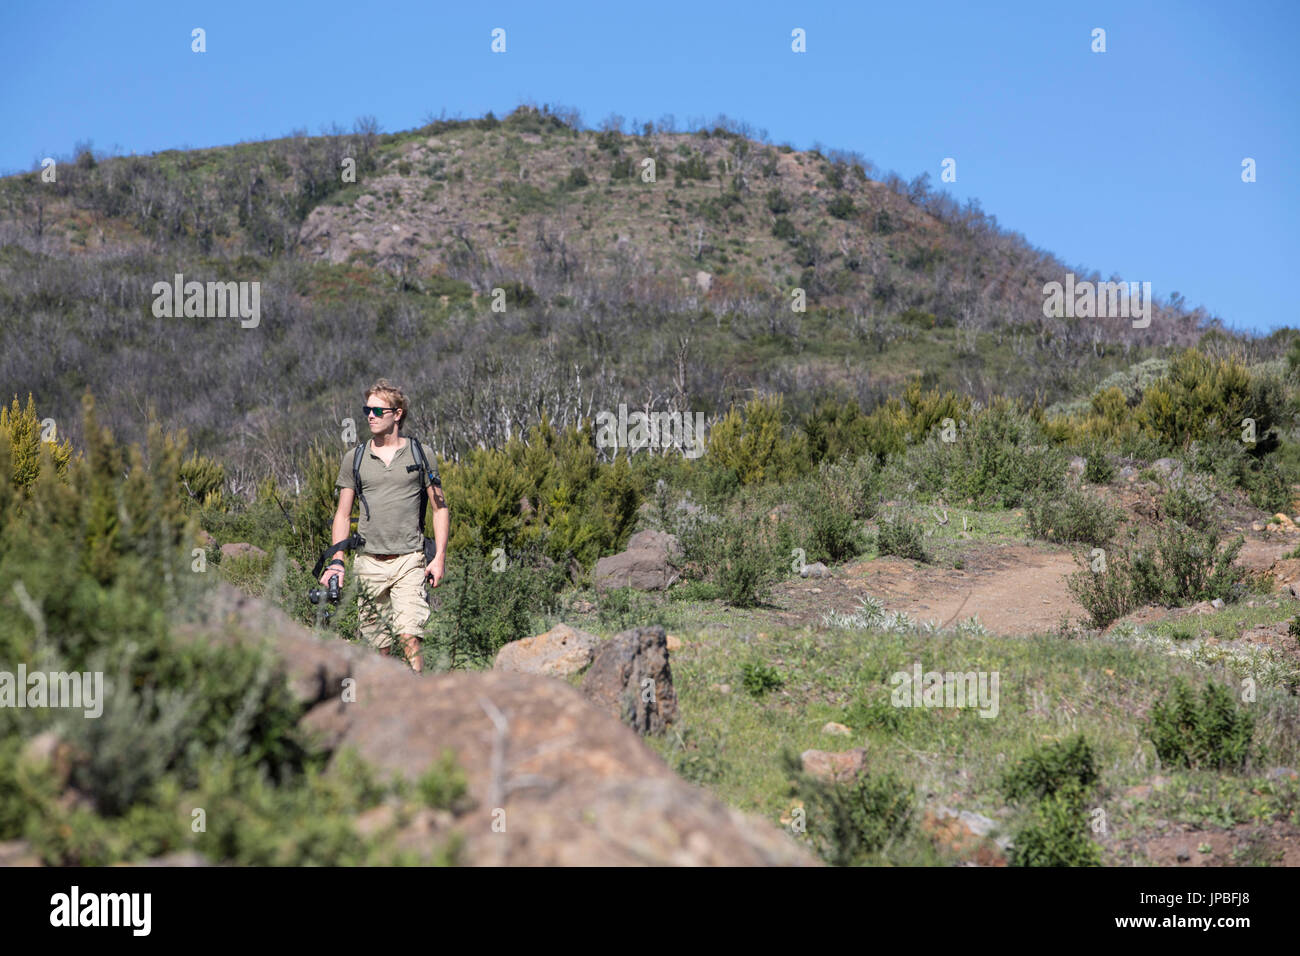 Hiker on the trail 16, La Gomera. In the background you can see the damage of conflagration in 2012 - Stock Image